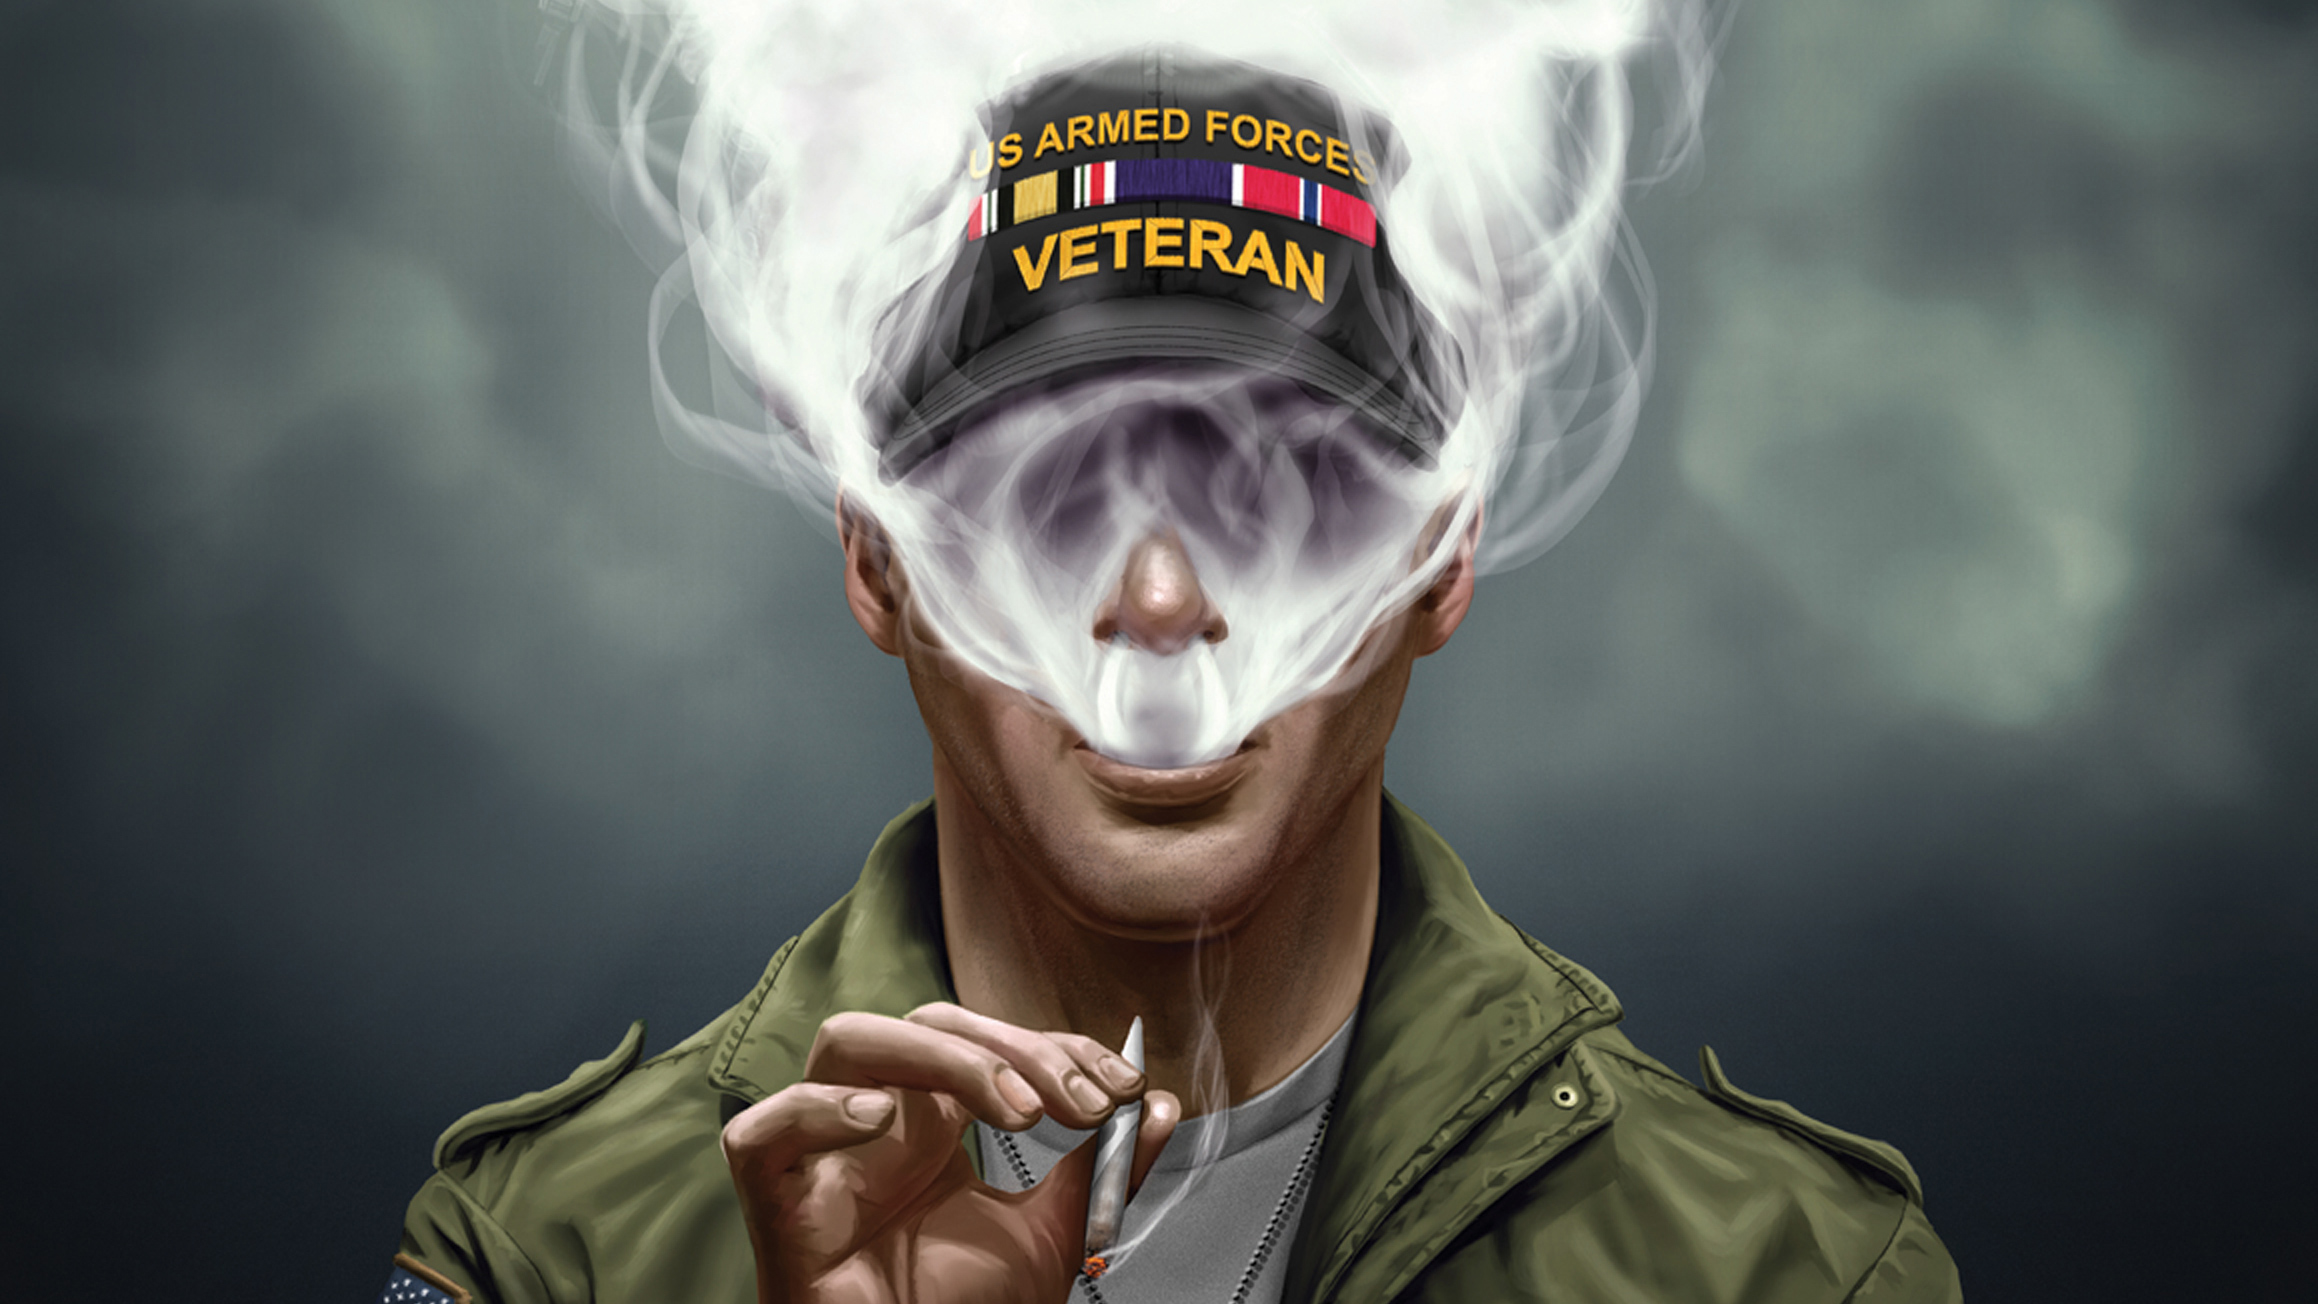 1680x1050 Us Armed Force Smoking Cigarette 1680x1050